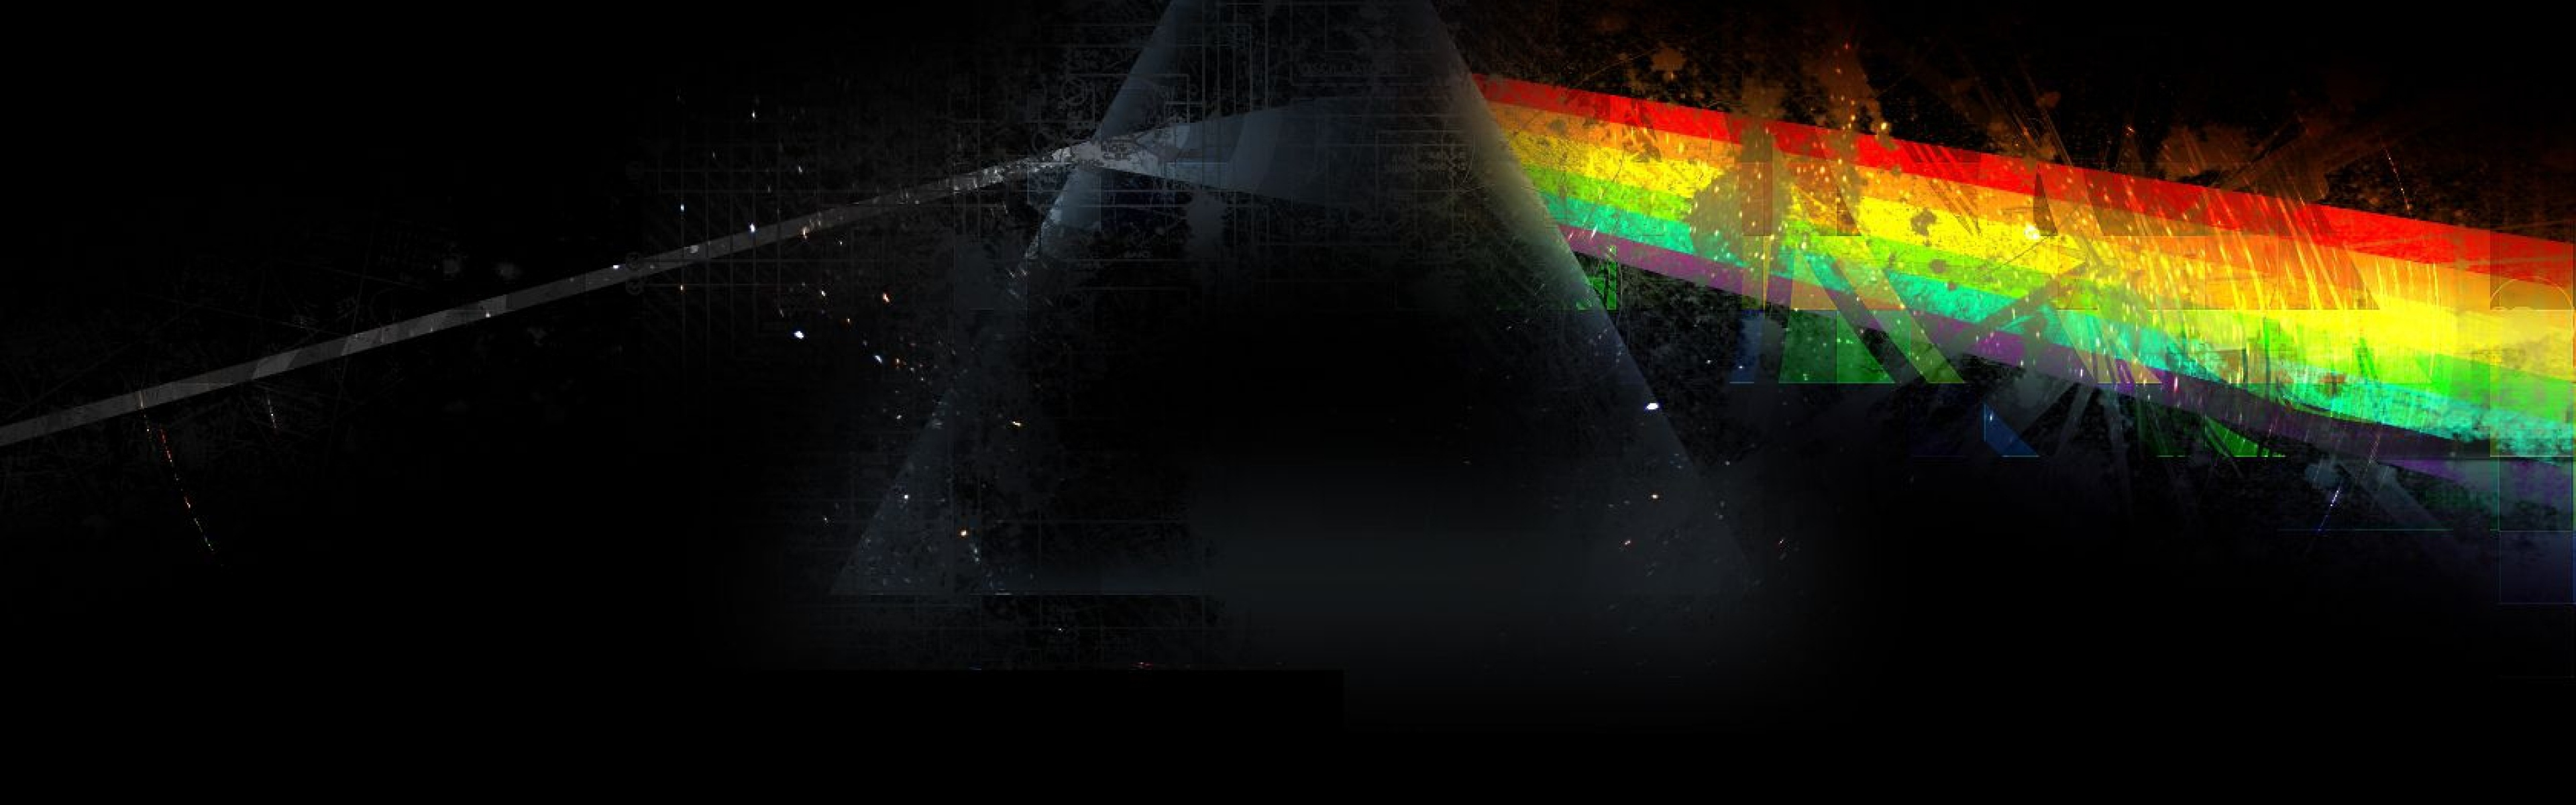 3840x1200 Wallpaper pink floyd triangle rainbow graphics 3840x1200